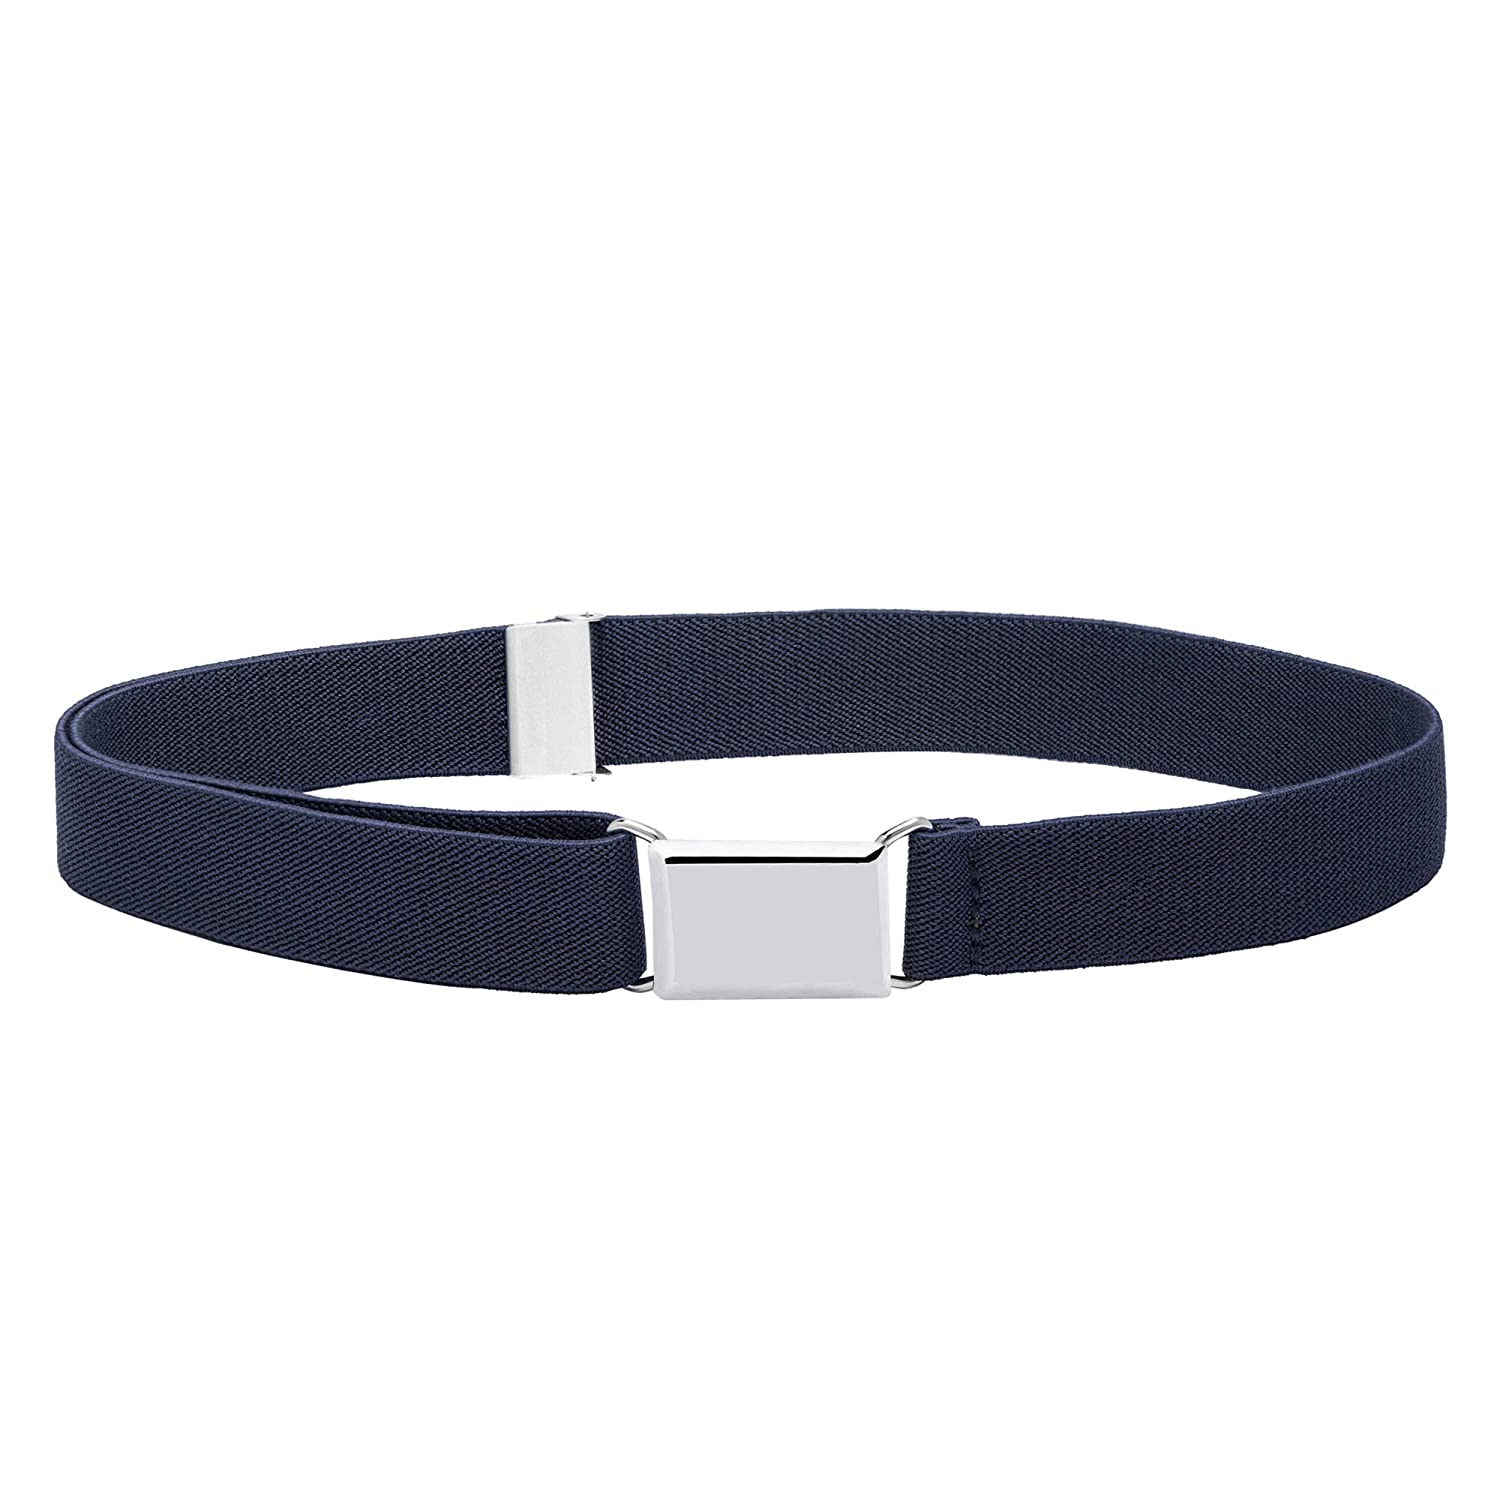 5122-BLK//BRW Buyless Fashion Kids Boys Adjustable Elastic Stretch Belt with Buckle 4 Pack